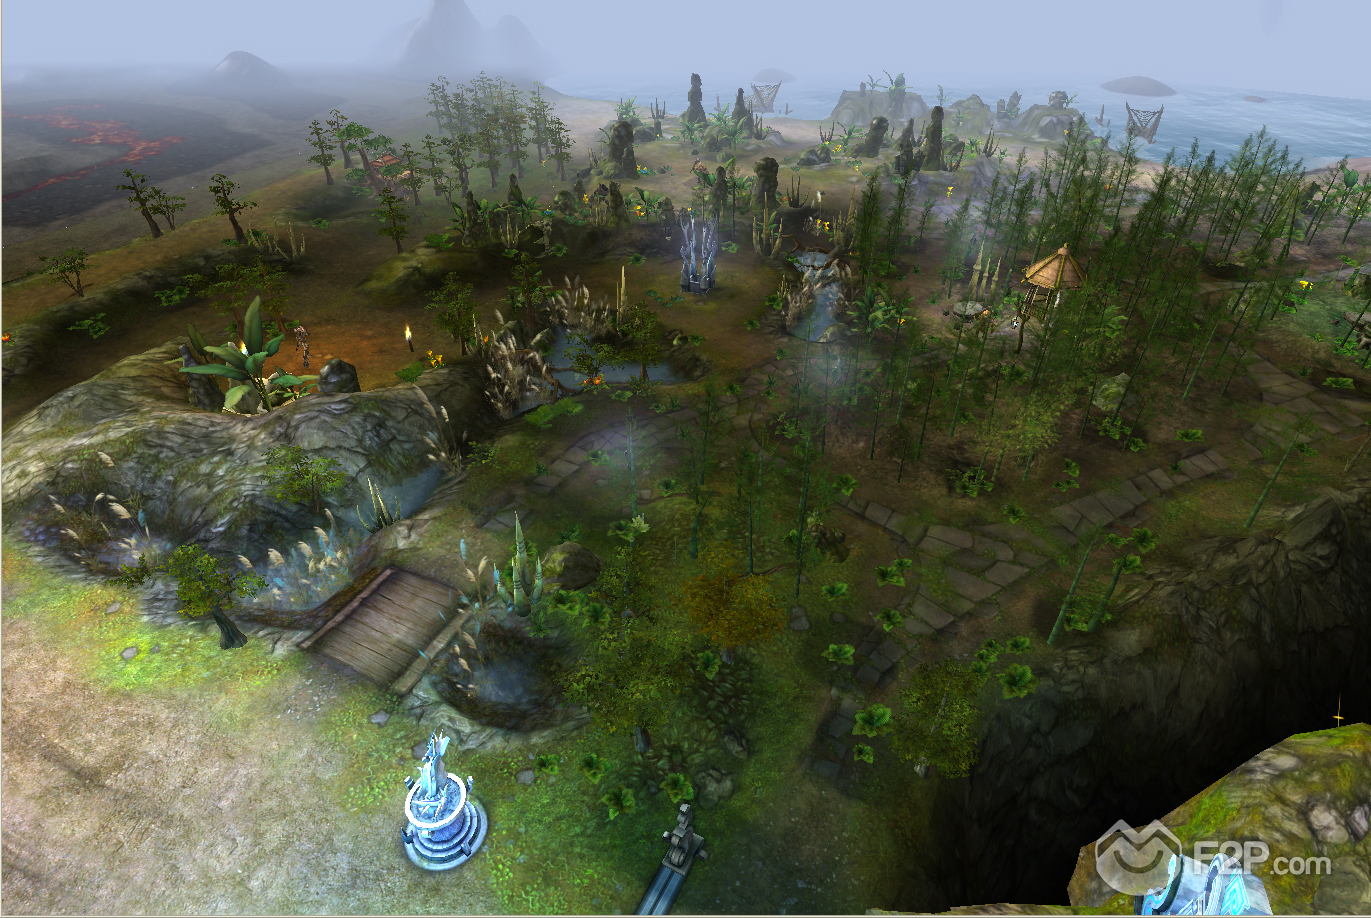 Click image for larger version.Name:Realm of the Titans 1.jpgViews:328Size:1.21 MBID:3356